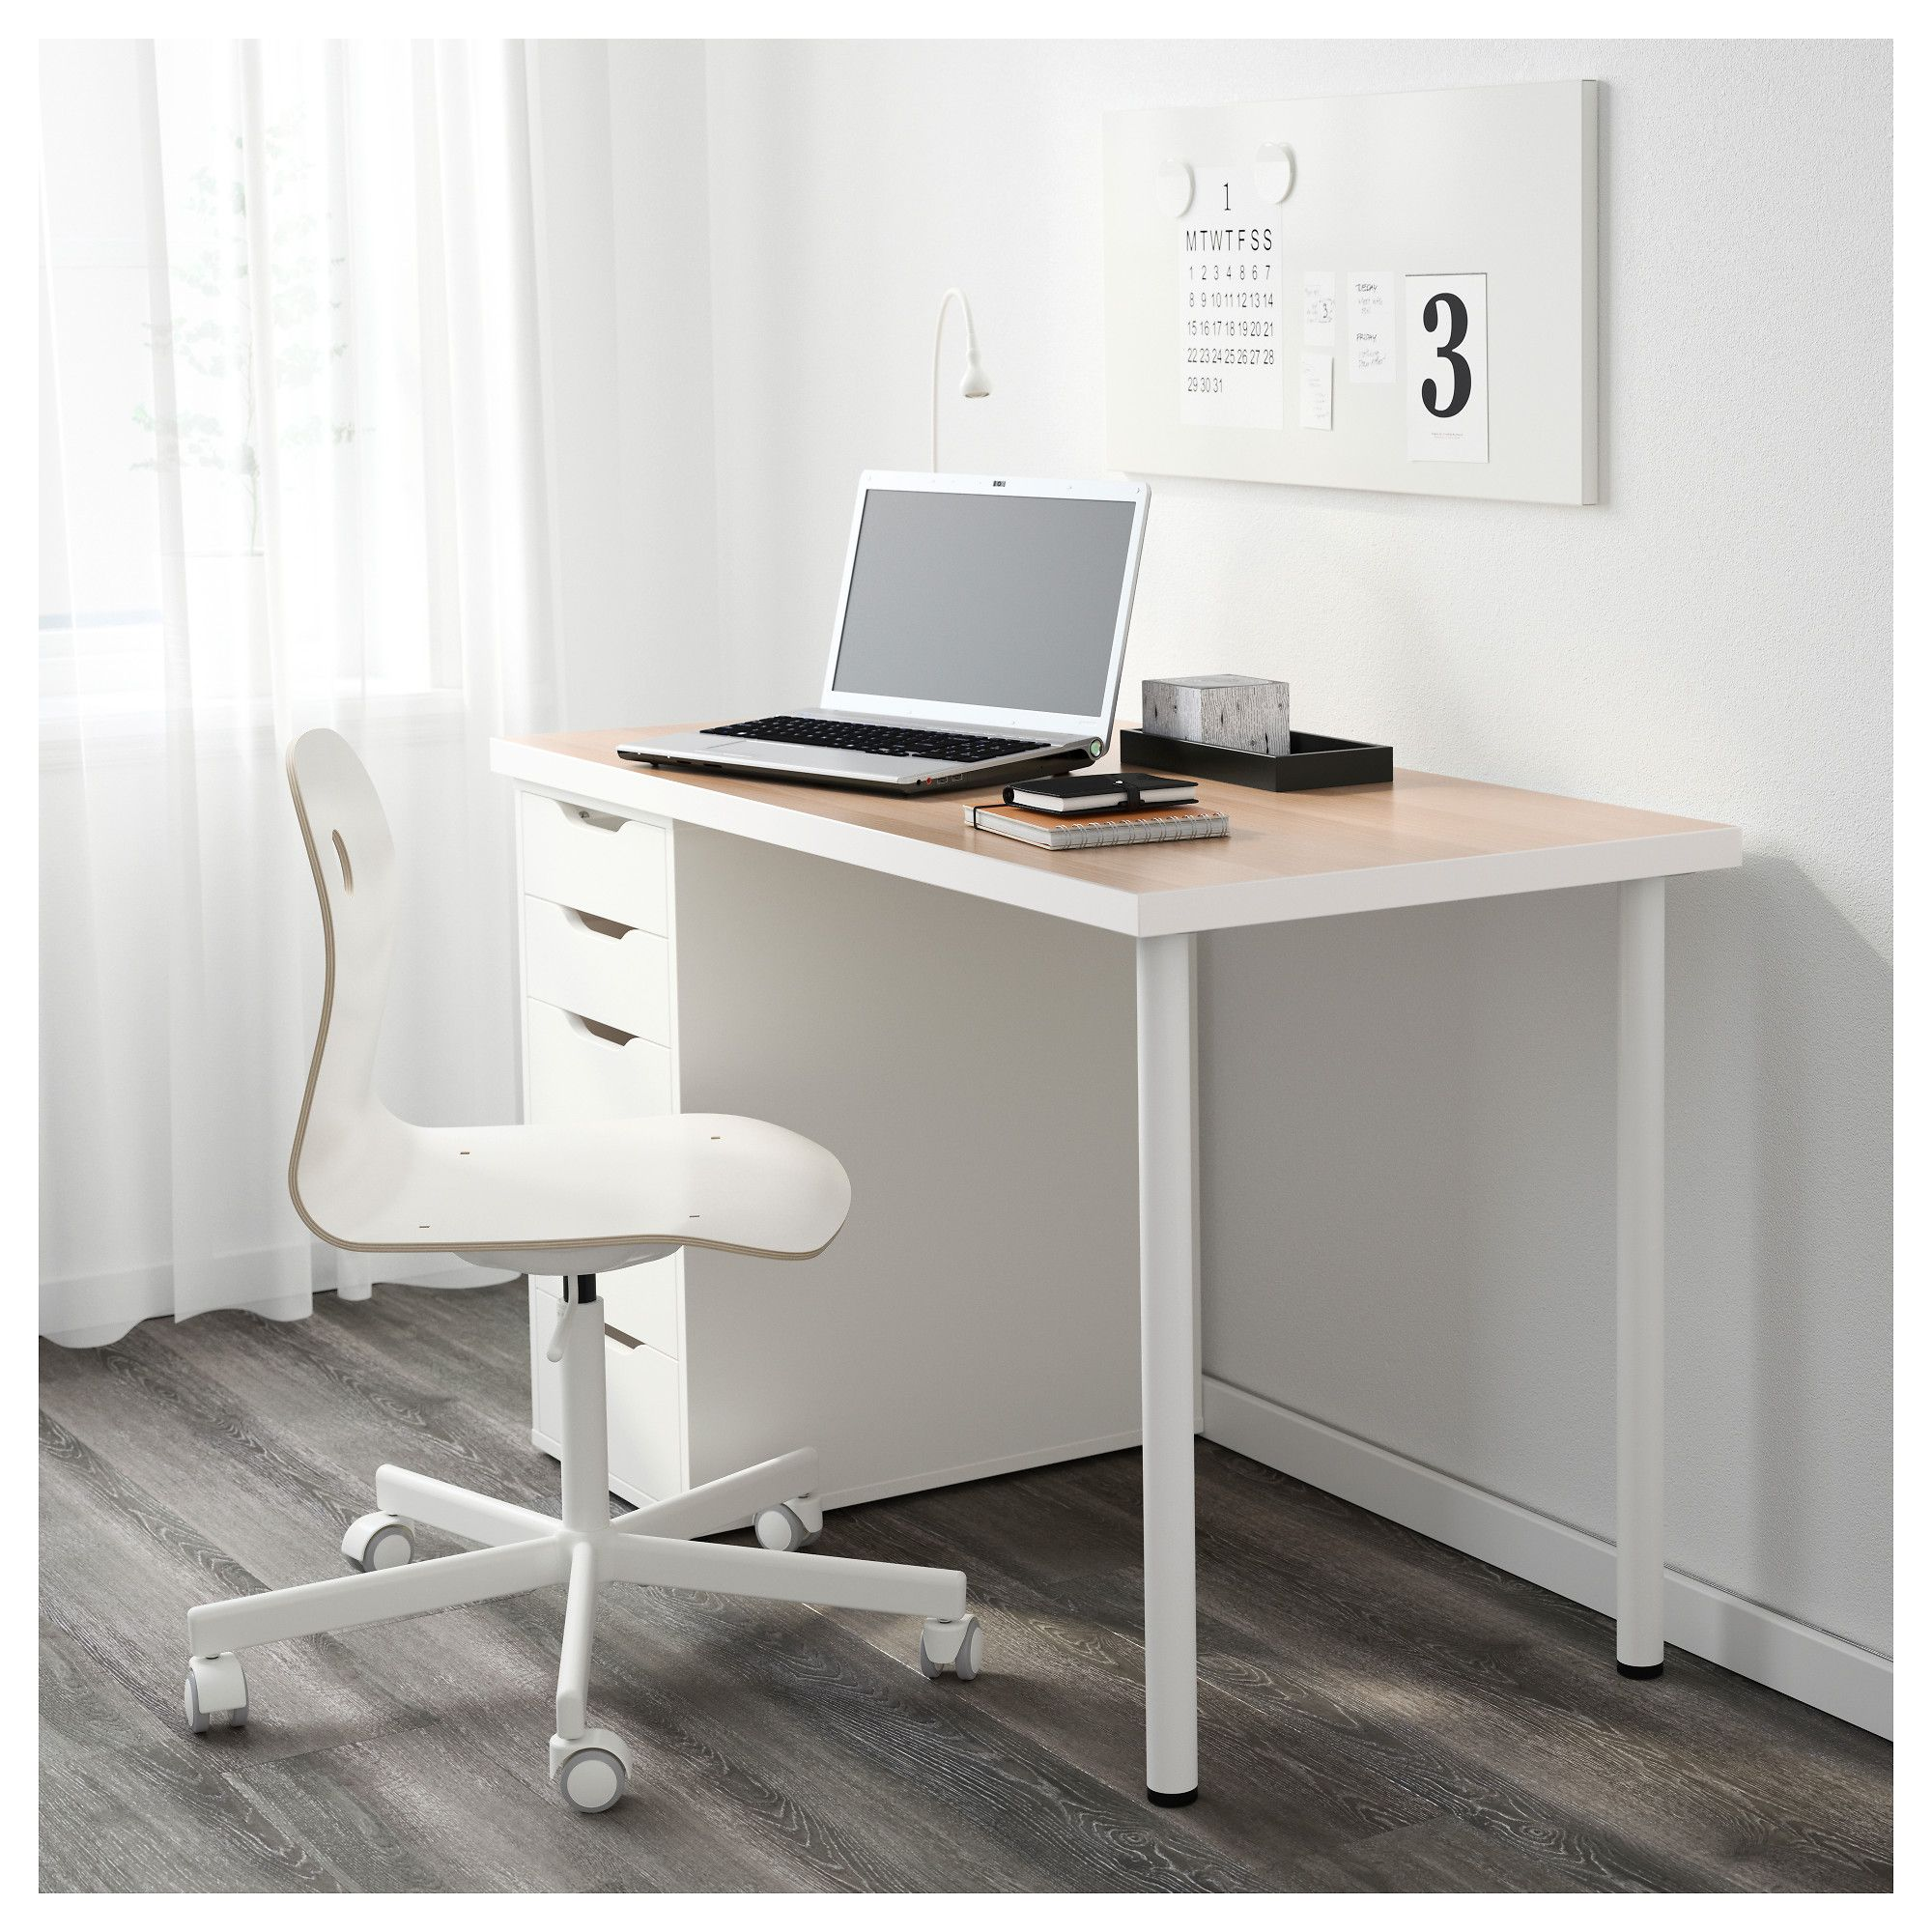 afdedc4e8df IKEA - LINNMON   ALEX Table white stained oak effect